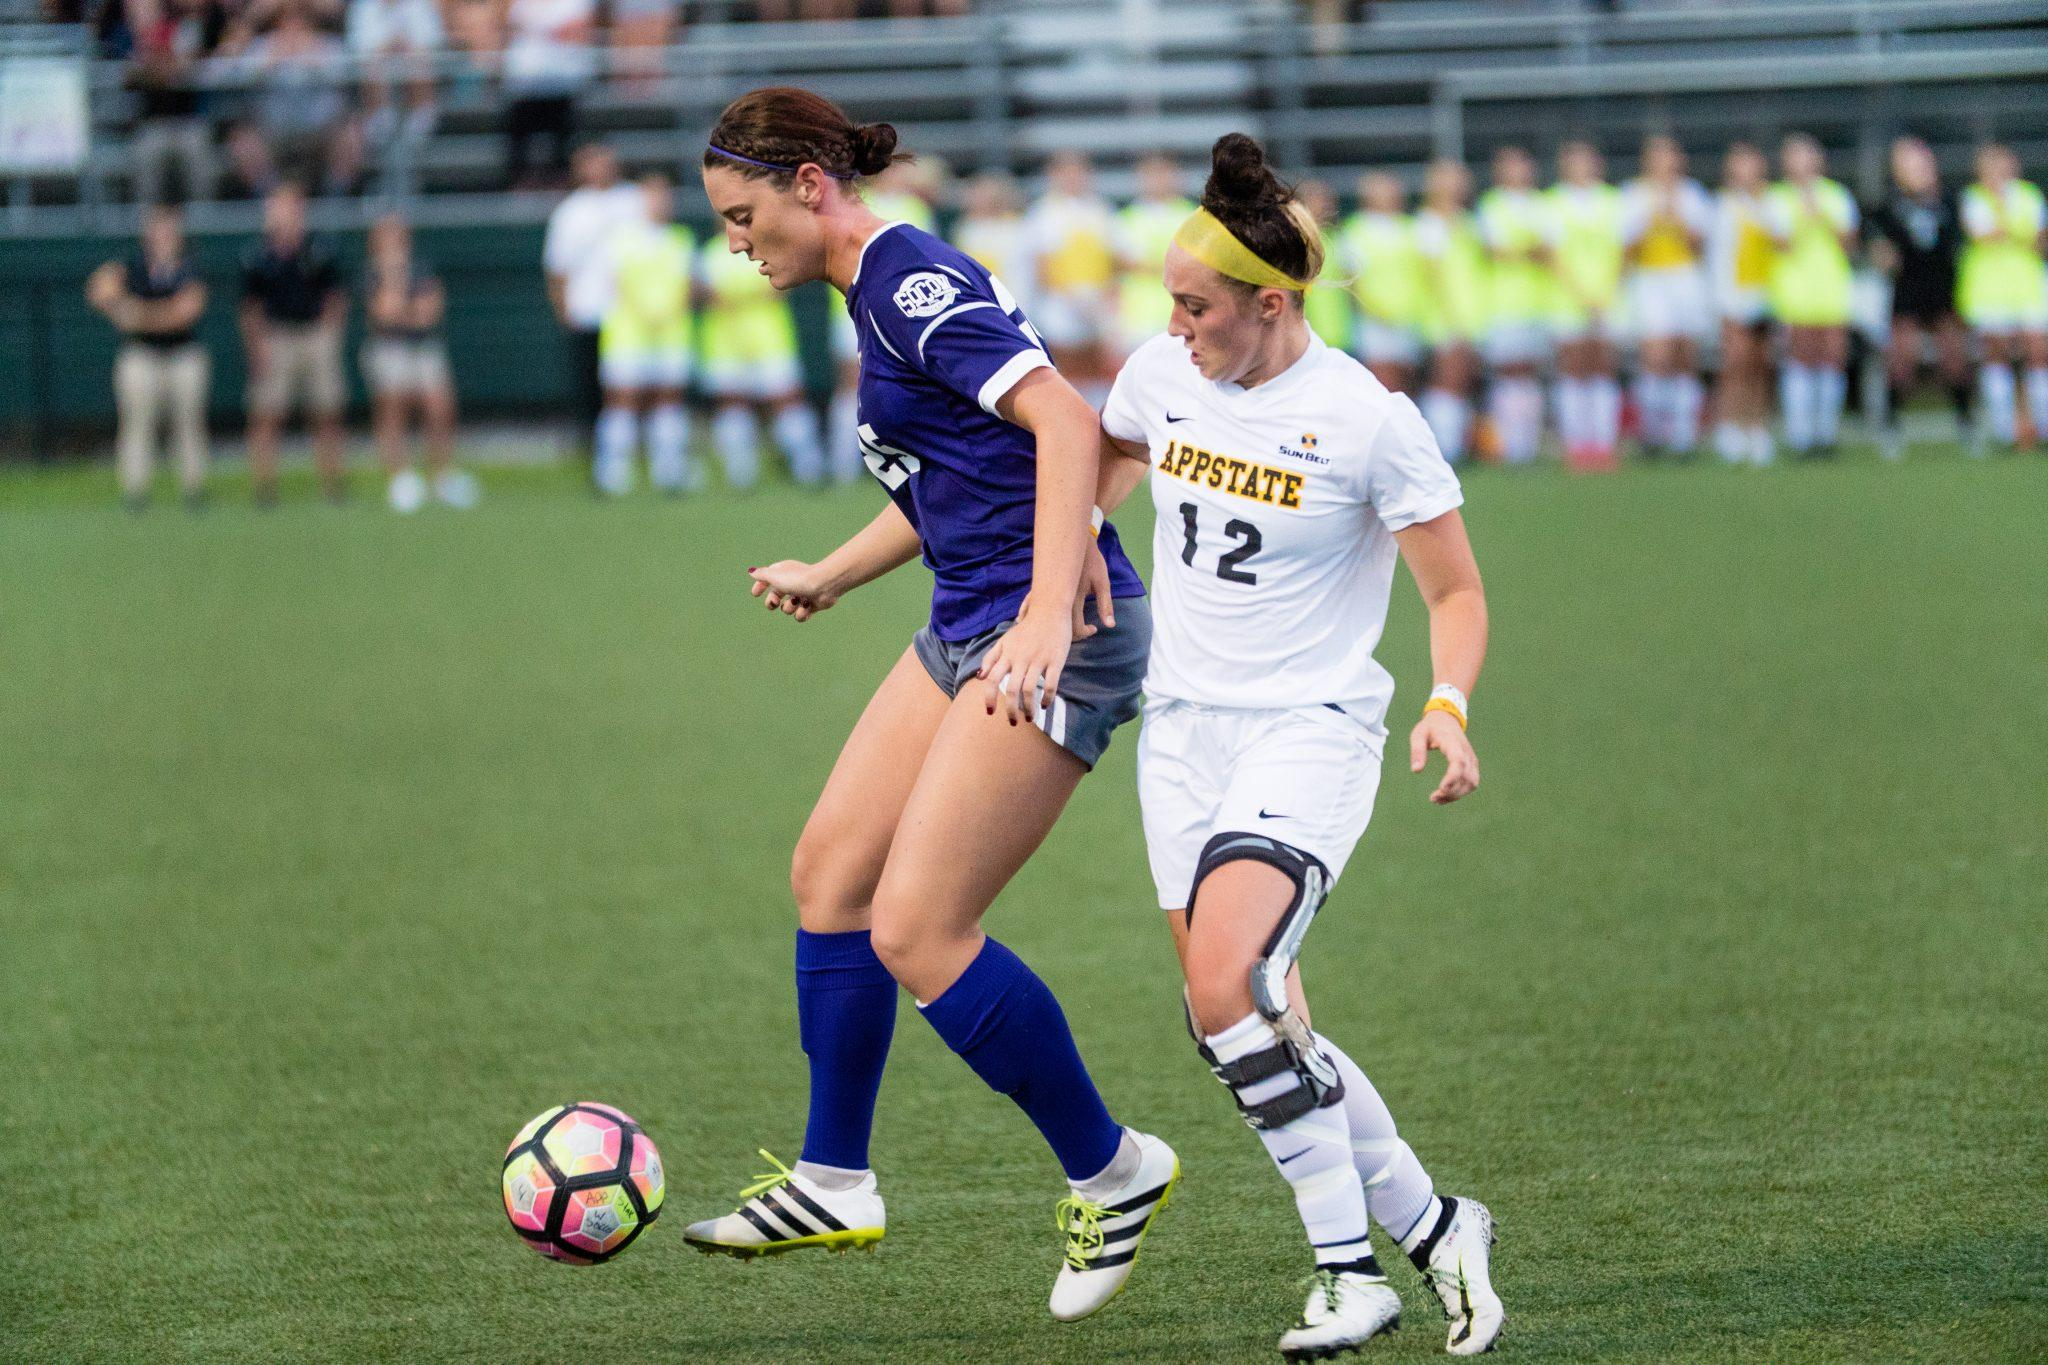 Junior Erin Settle battles for the ball in Thursday's exhibition game. Photo by: Maleek Loyd